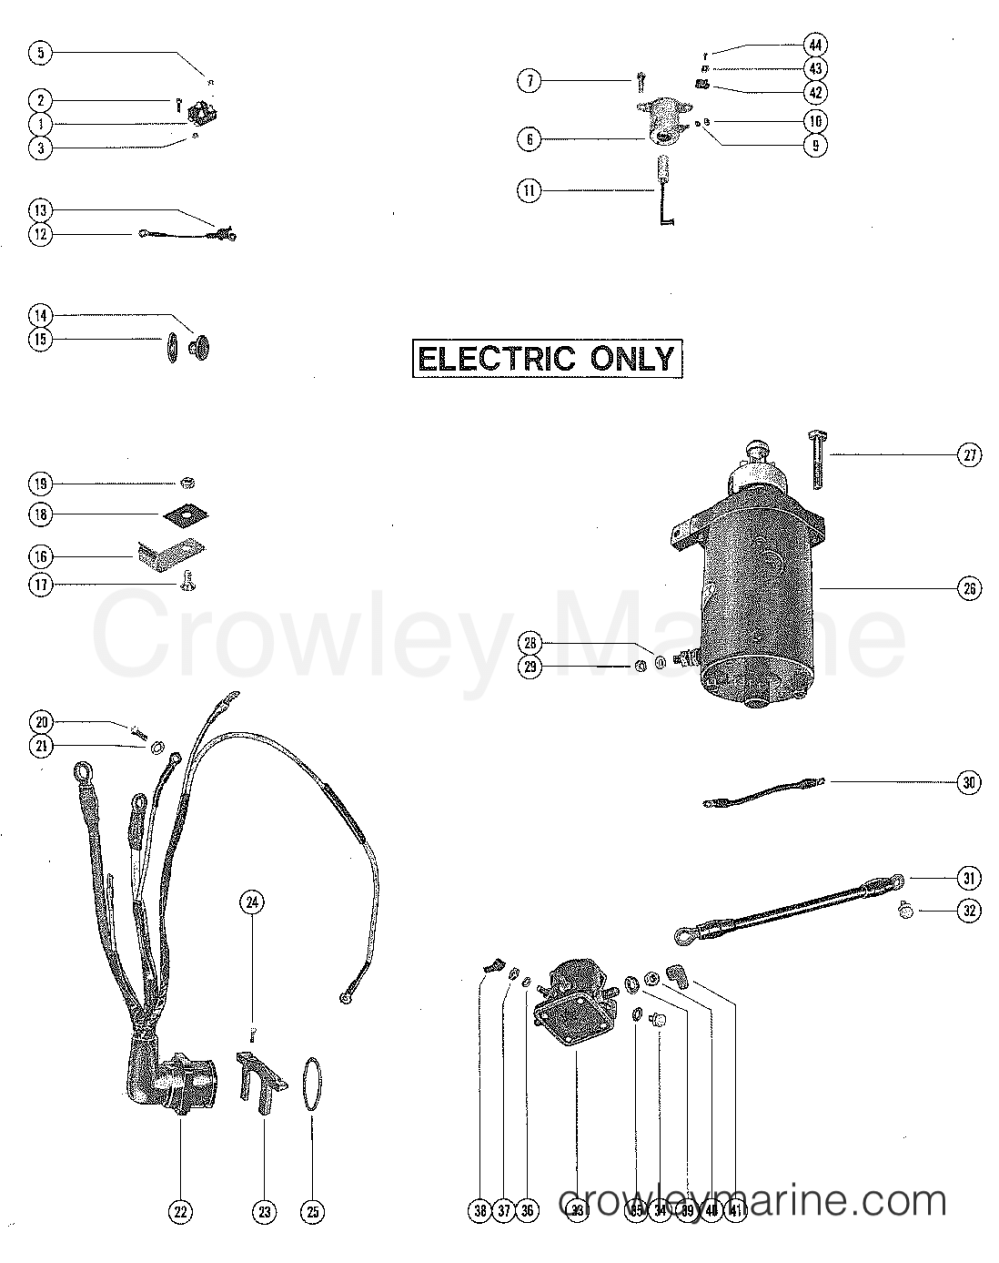 medium resolution of starter motor rectifier and wiring harness 1978 mercury 1978 90 hp mercury outboard wiring diagram 1978 90 hp mercury outboard wiring diagram